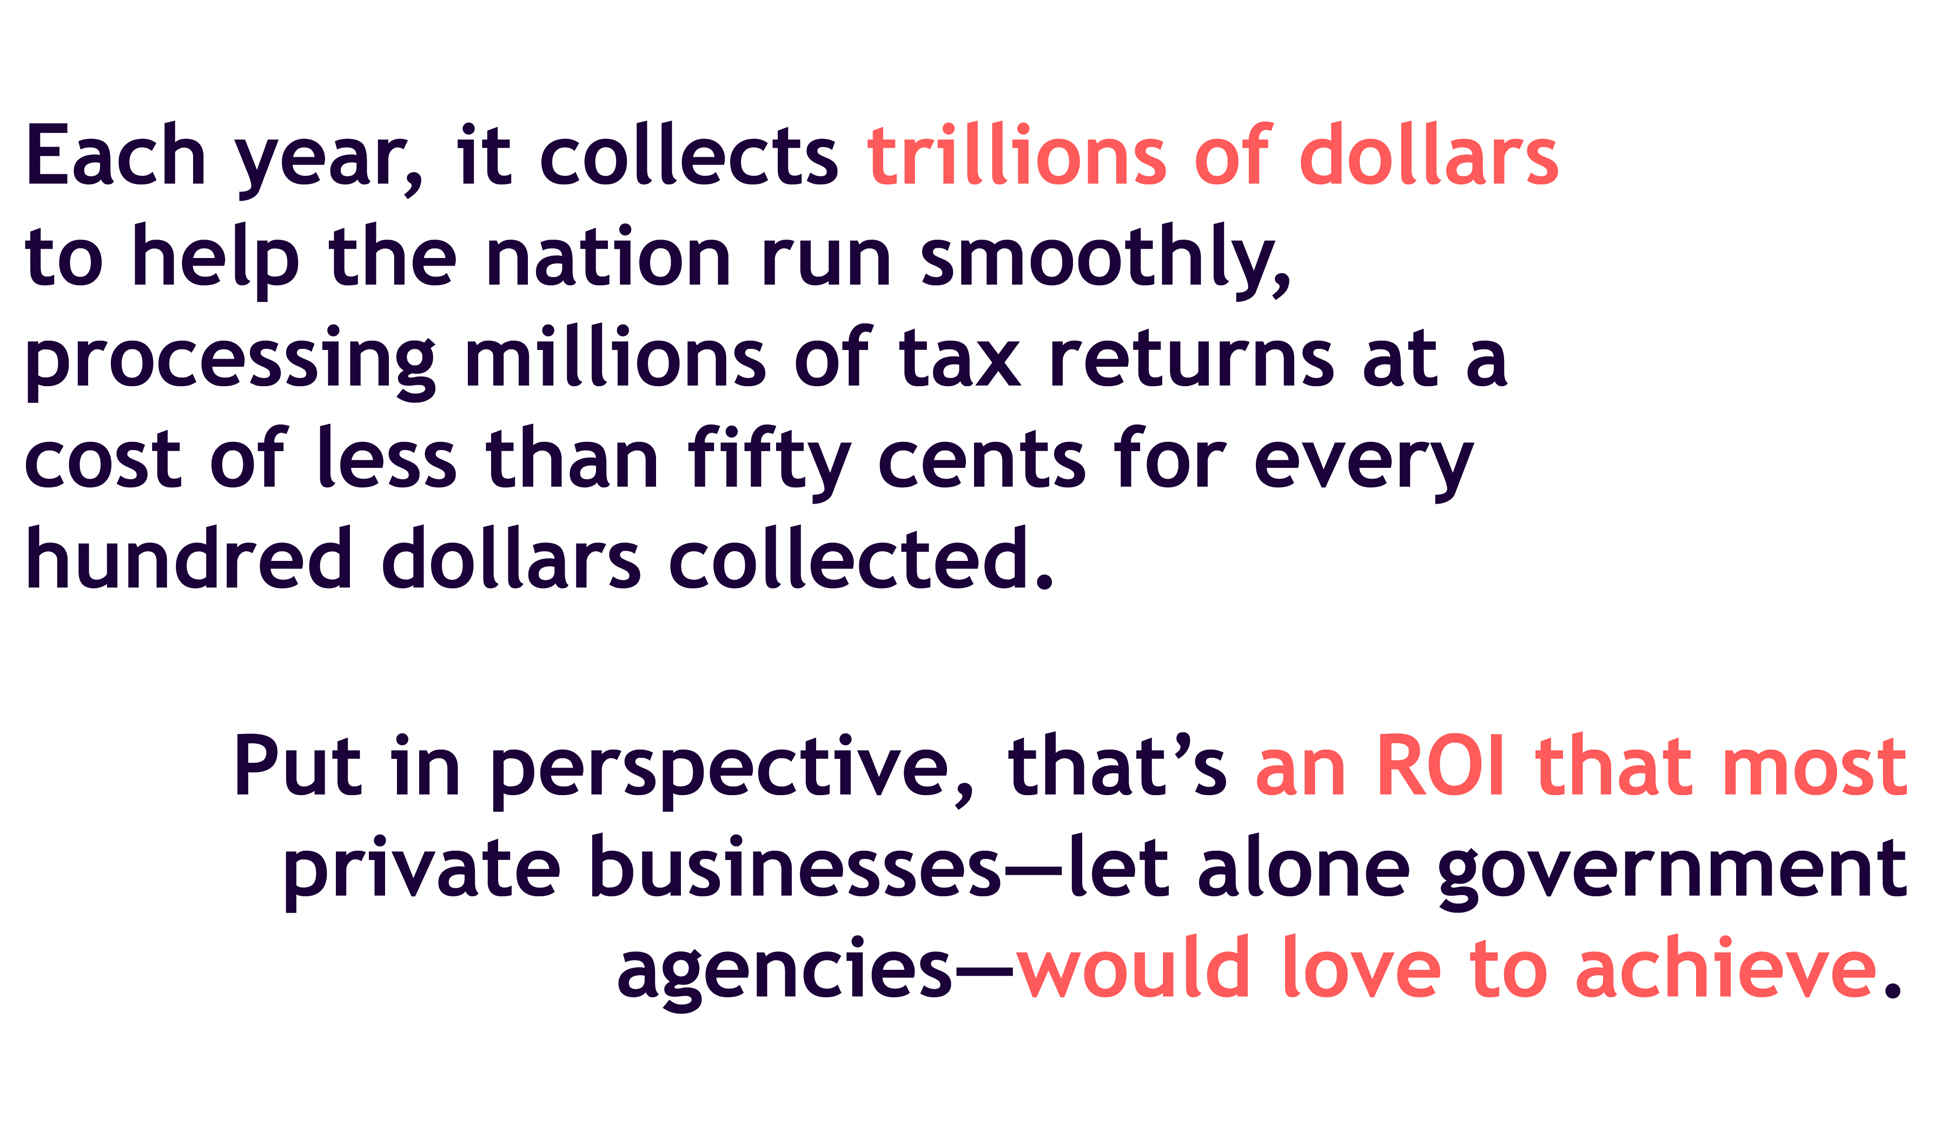 A page from a tax design challenge submission. Each year, the IRS collects trillions of dollars to help the nation run smoothly and other information regarding the IRS is included.